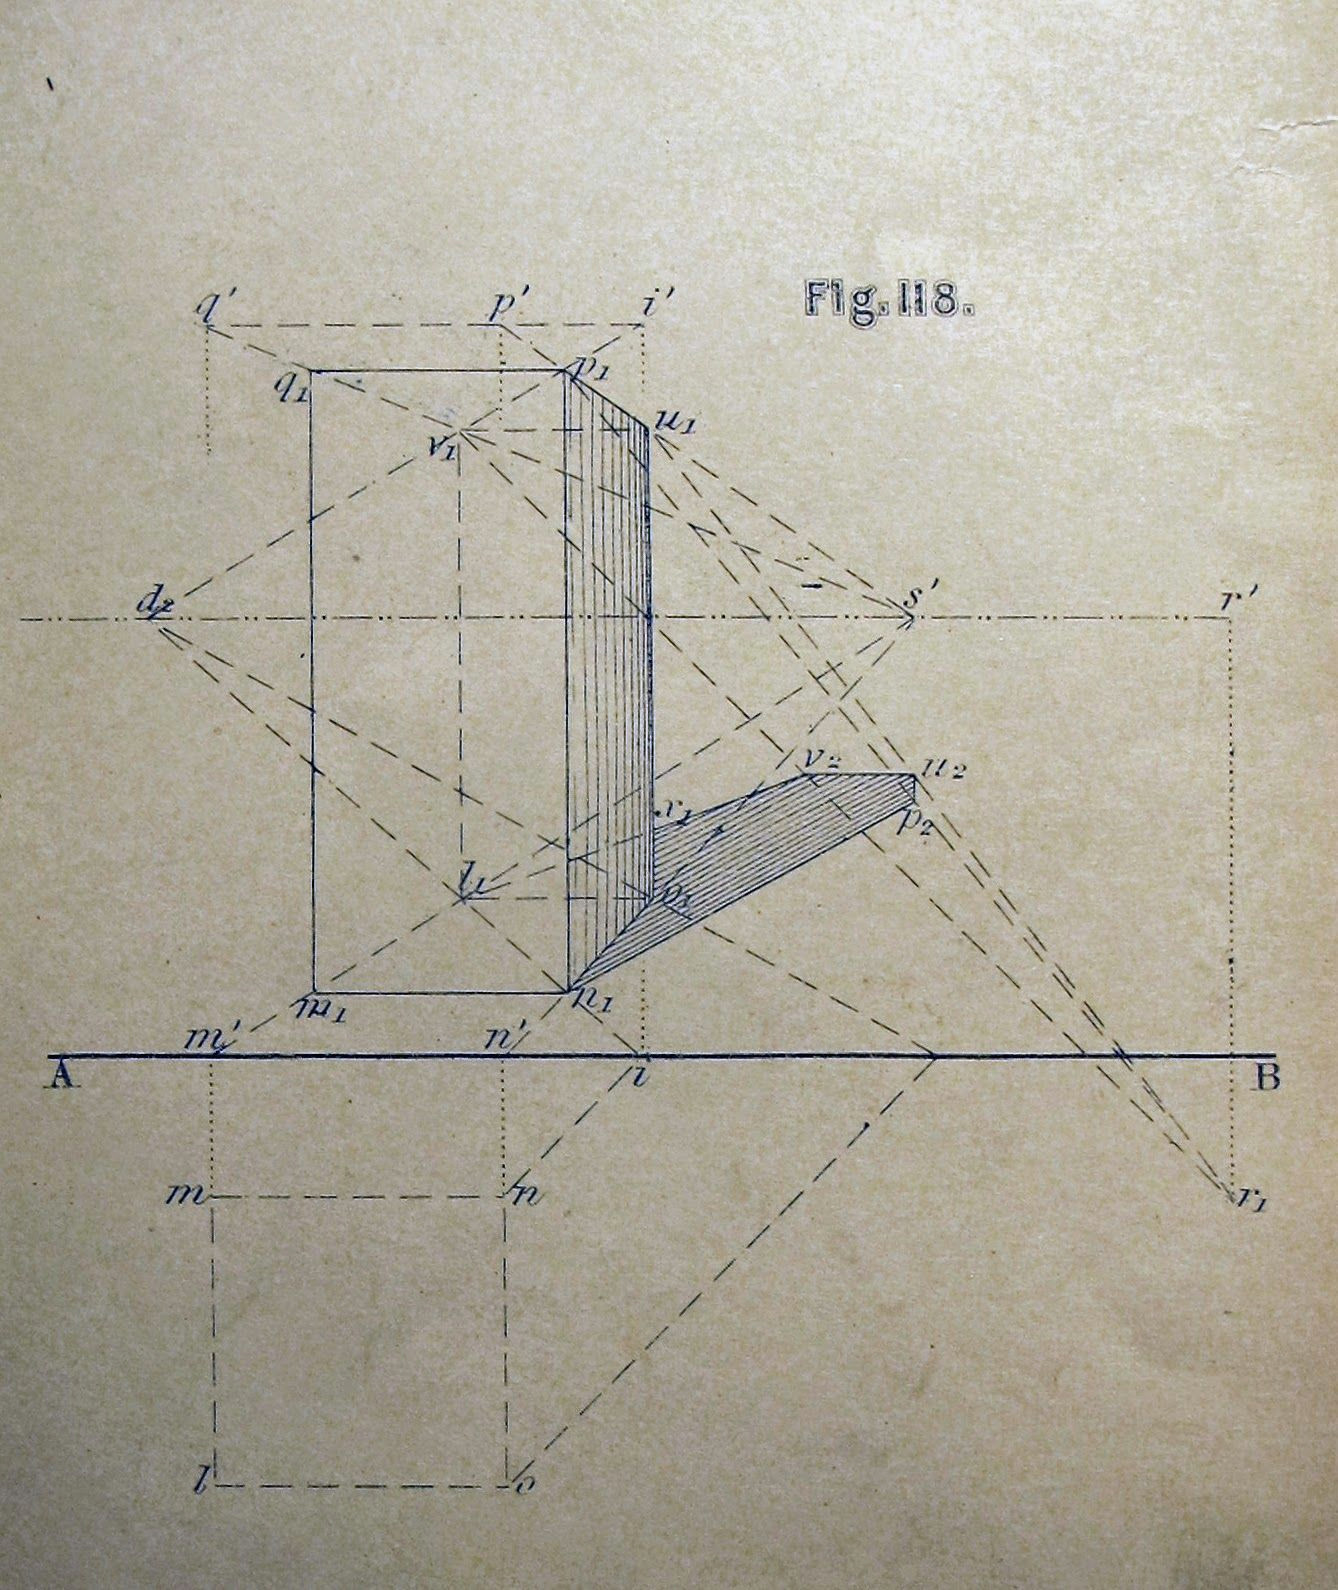 surface fragments perspective drawings by v pellegrin 1873 and ernest norling 1929